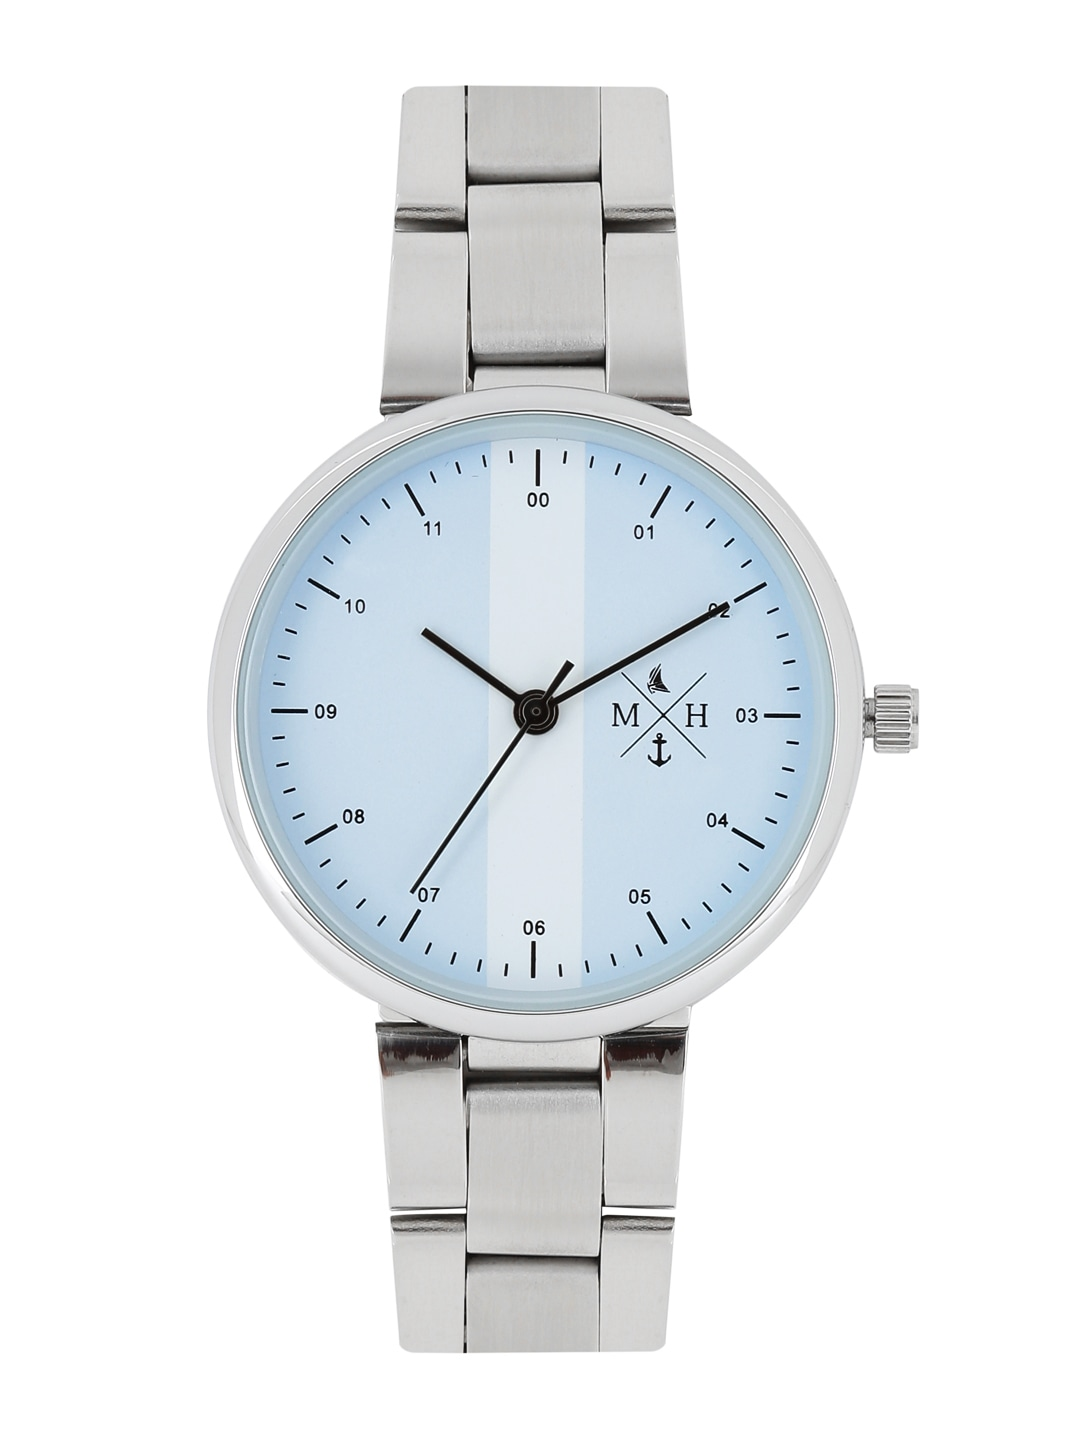 Mens Watches Titan With Price Images